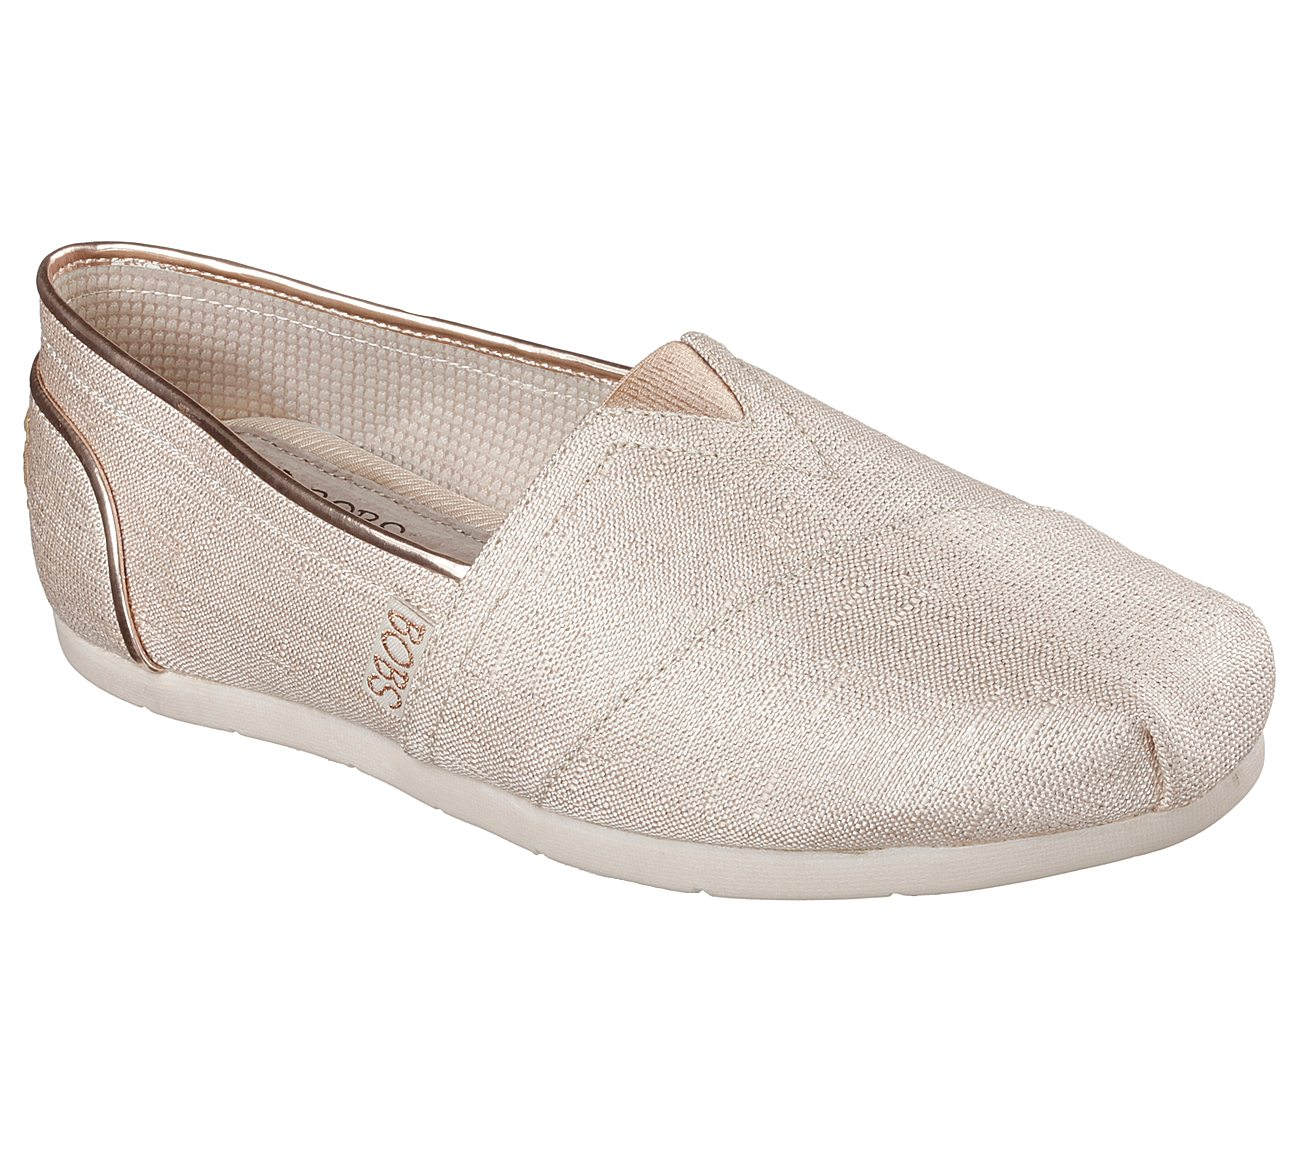 05e92e6c39b6 Buy SKECHERS Luxe Bobs - Festivities SKECHERS Bobs Shoes only £42.00